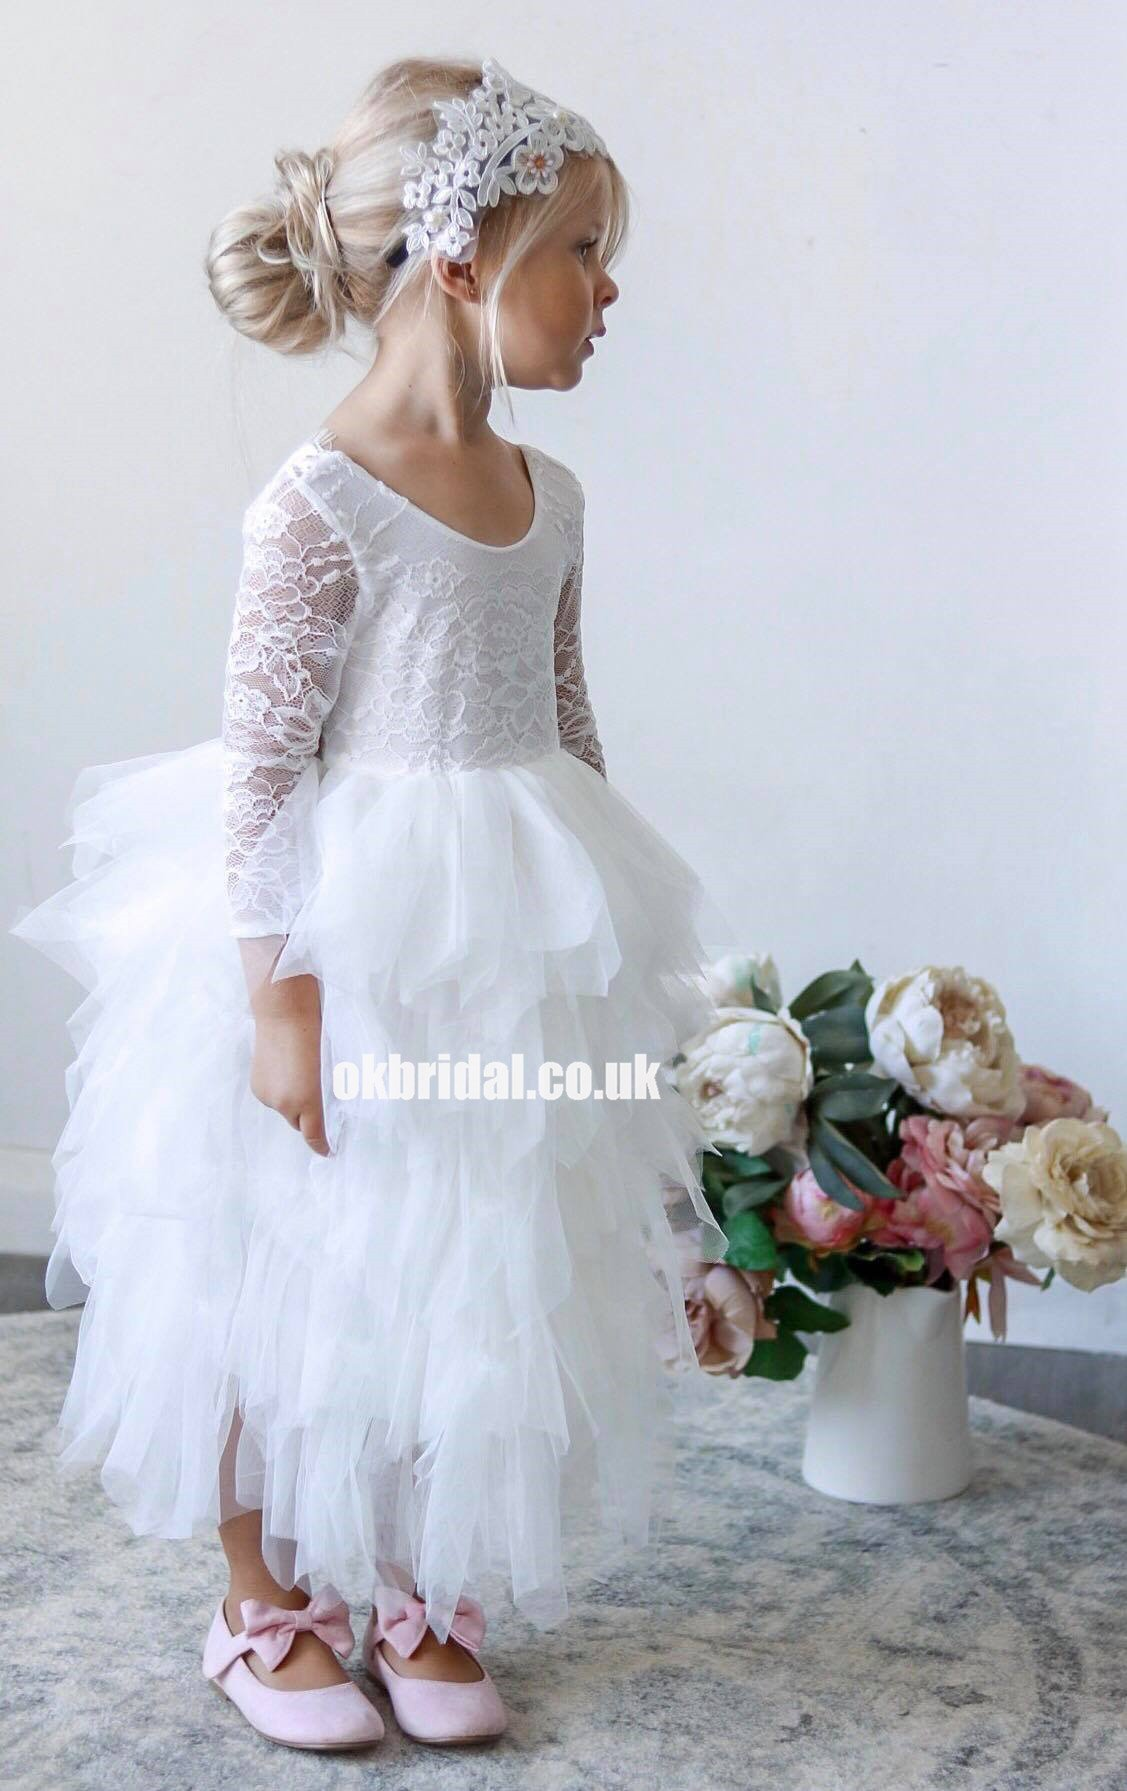 New Lace Flower Long Sleeve Party White Baby Girls Dress Kids Wedding Clothes UK